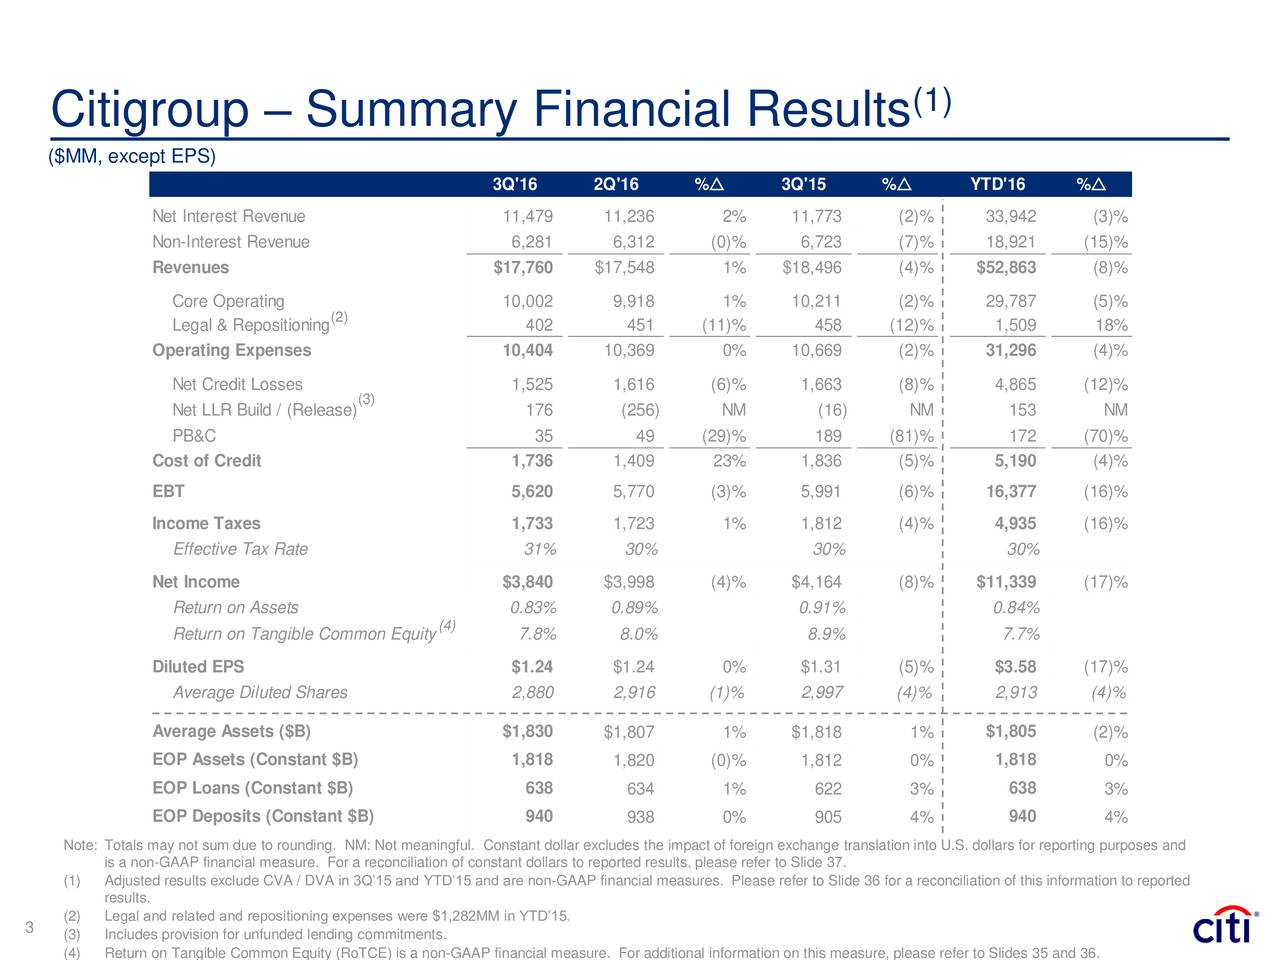 Citigroup  Summary Financial Results ($MM, except EPS) 3Q'16 2Q'16 %r 3Q'15 %r YTD'16 %r Net Interest Revenue 11,479 11,236 2% 11,773 (2)% 33,942 (3)% Non-Interest Revenue 6,281 6,312 (0)% 6,723 (7)% 18,921 (15)% Revenues $17,760 $17,548 1% $18,496 (4)% $52,863 (8)% Core Operating 10,002 9,918 1% 10,211 (2)% 29,787 (5)% Legal & Repositioning 402 451 (11)% 458 (12)% 1,509 18% Operating Expenses 10,404 10,369 0% 10,669 (2)% 31,296 (4)% Net Credit Losses 1,525 1,616 (6)% 1,663 (8)% 4,865 (12)% (3) Net LLR Build / (Release) 176 (256) NM (16) NM 153 NM PB&C 35 49 (29)% 189 (81)% 172 (70)% Cost of Credit 1,736 1,409 23% 1,836 (5)% 5,190 (4)% EBT 5,620 5,770 (3)% 5,991 (6)% 16,377 (16)% Income Taxes 1,733 1,723 1% 1,812 (4)% 4,935 (16)% Effective Tax Rate 31% 30% 30% 30% Net Income $3,840 $3,998 (4)% $4,164 (8)% $11,339 (17)% Return on Assets 0.83% 0.89% 0.91% 0.84% Return on Tangible Common Equity) 7.8% 8.0% 8.9% 7.7% Diluted EPS $1.24 $1.24 0% $1.31 (5)% $3.58 (17)% Average Diluted Shares 2,880 2,916 (1)% 2,997 (4)% 2,913 (4)% Average Assets ($B) $1,830 $1,807 1% $1,818 1% $1,805 (2)% EOP Assets (Constant $B) 1,818 1,820 (0)% 1,812 0% 1,818 0% EOP Loans (Constant $B) 638 634 1% 622 3% 638 3% EOP Deposits (Constant $B) 940 938 0% 905 4% 940 4% Note: Totals may not sum due to rounding. NM: Not meaningful. Constant dollar excludes the impact of foreign exchange translation into U.S. dollars for reporting purposes and is a non-GAAP financial measure. For a reconciliation of constant dollars to reported results, please refer to Slide 37. Adjusted results exclude CVA / DVA in 3Q15 and YTD15 and are non-GAAP financial measures. Please refer to Slide 36 for a reconciliation of this information to reported results. 3 (2) Legal and related and repositioning expenses were $1,282MM in YTD15. (3) Includes provision for unfunded lending commitments.